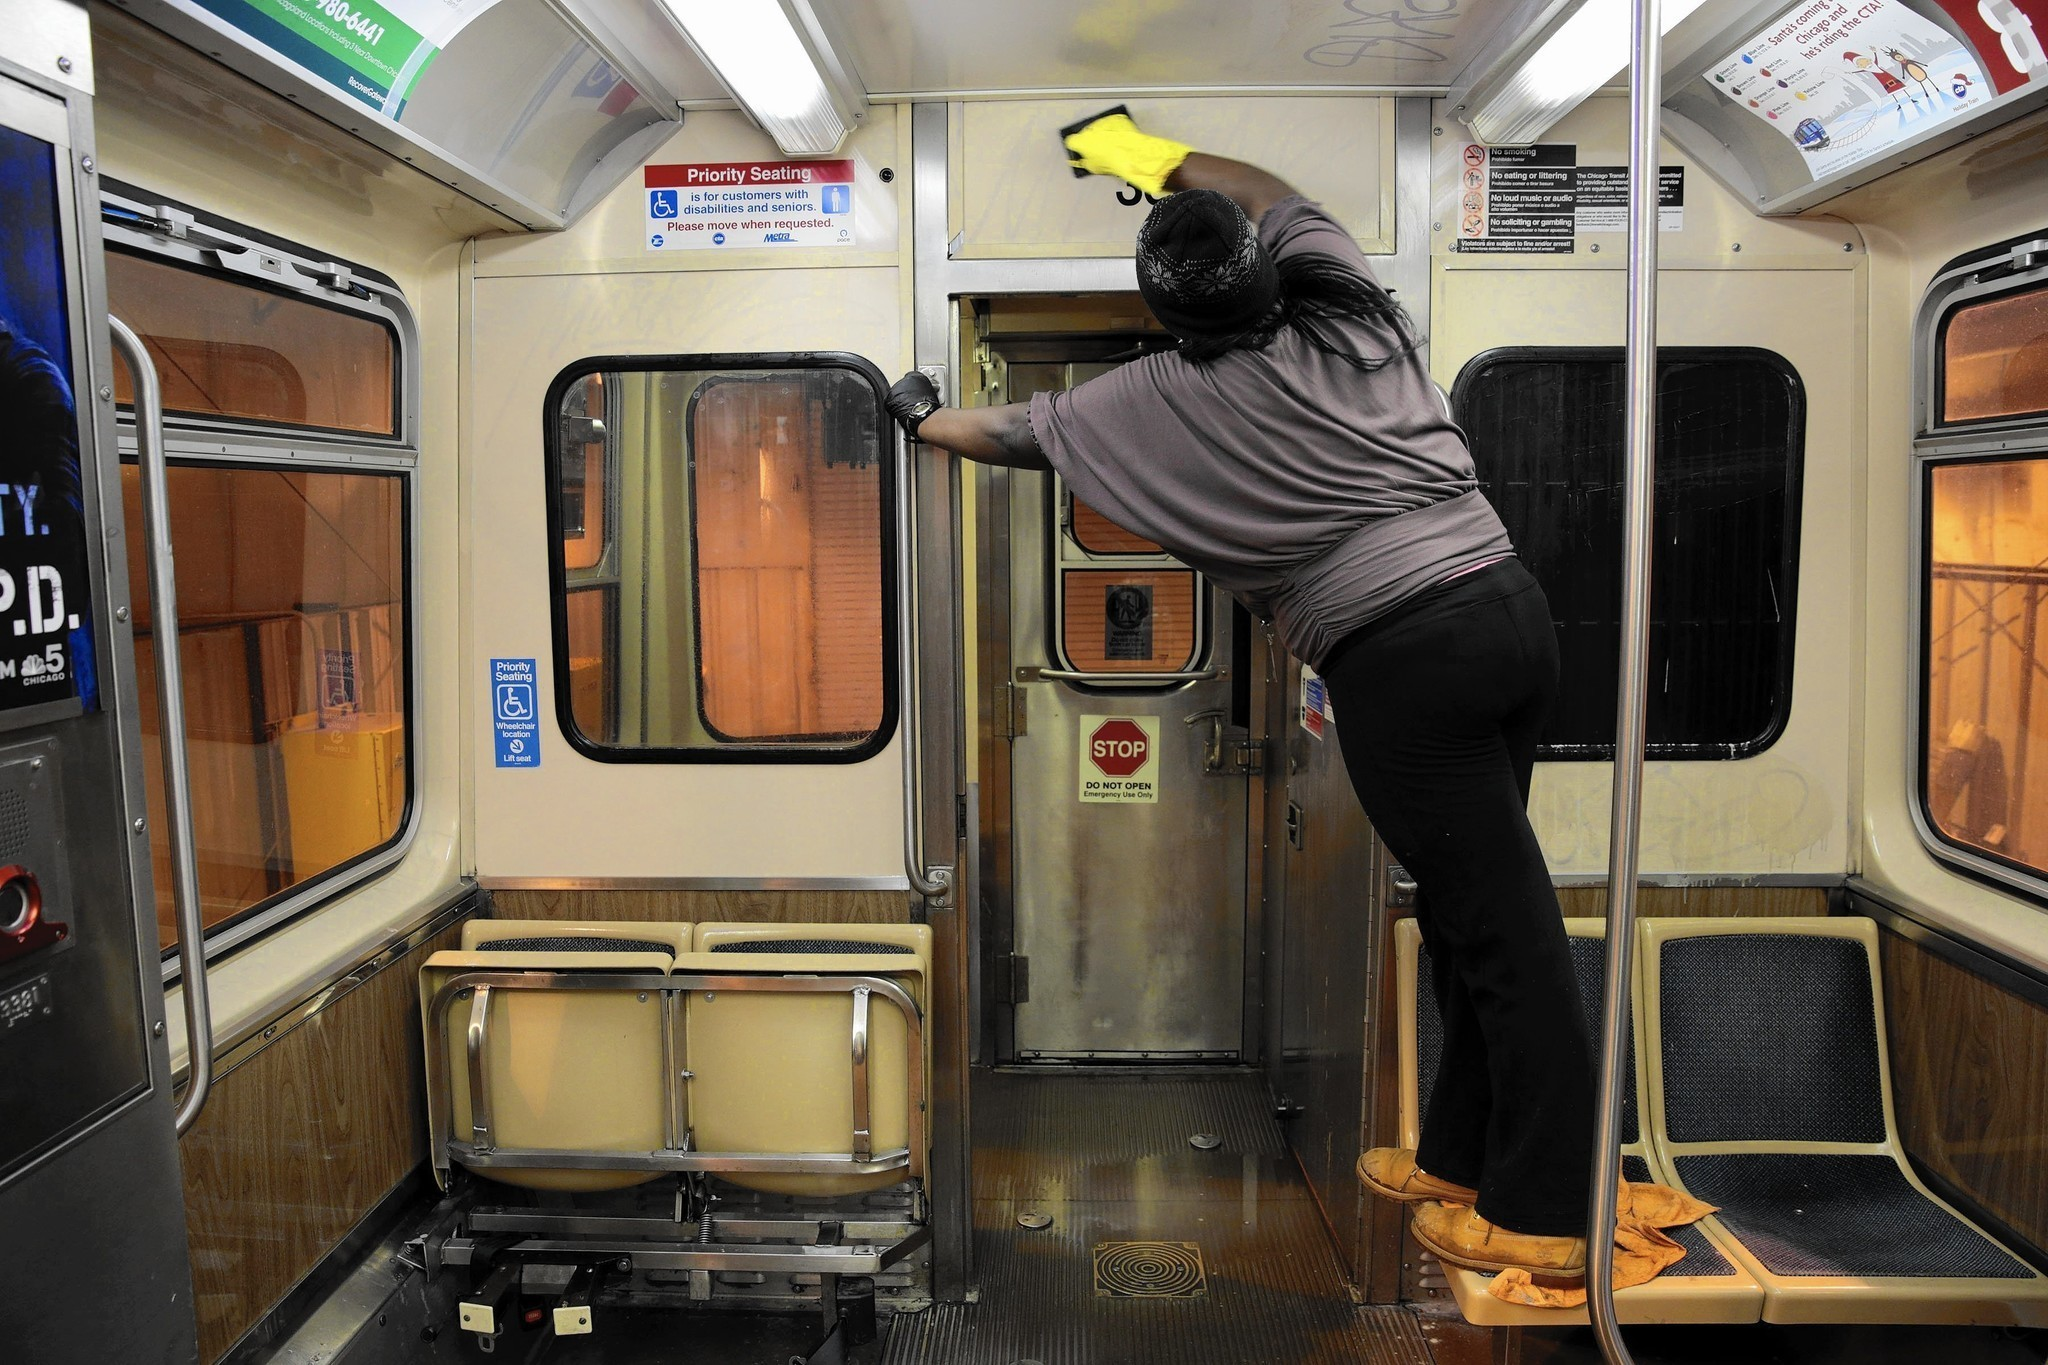 Cta Announces Deal With Unions To Extend Jobs Program For Felons